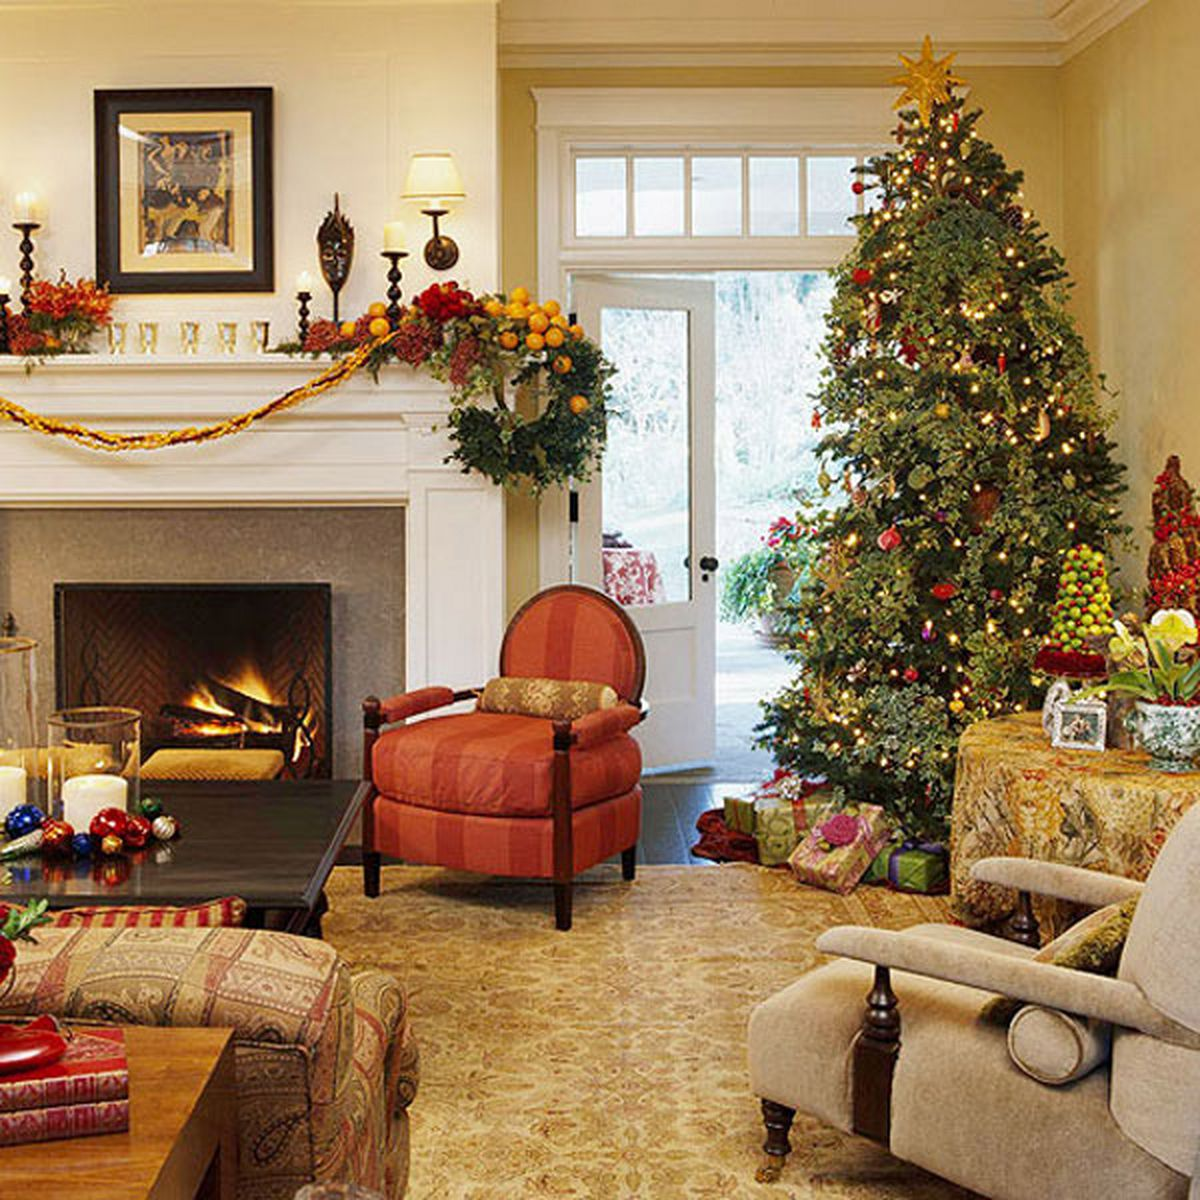 Living Room Christmas Decorations Ideas For Living Room christmas living room decorating ideas ideas